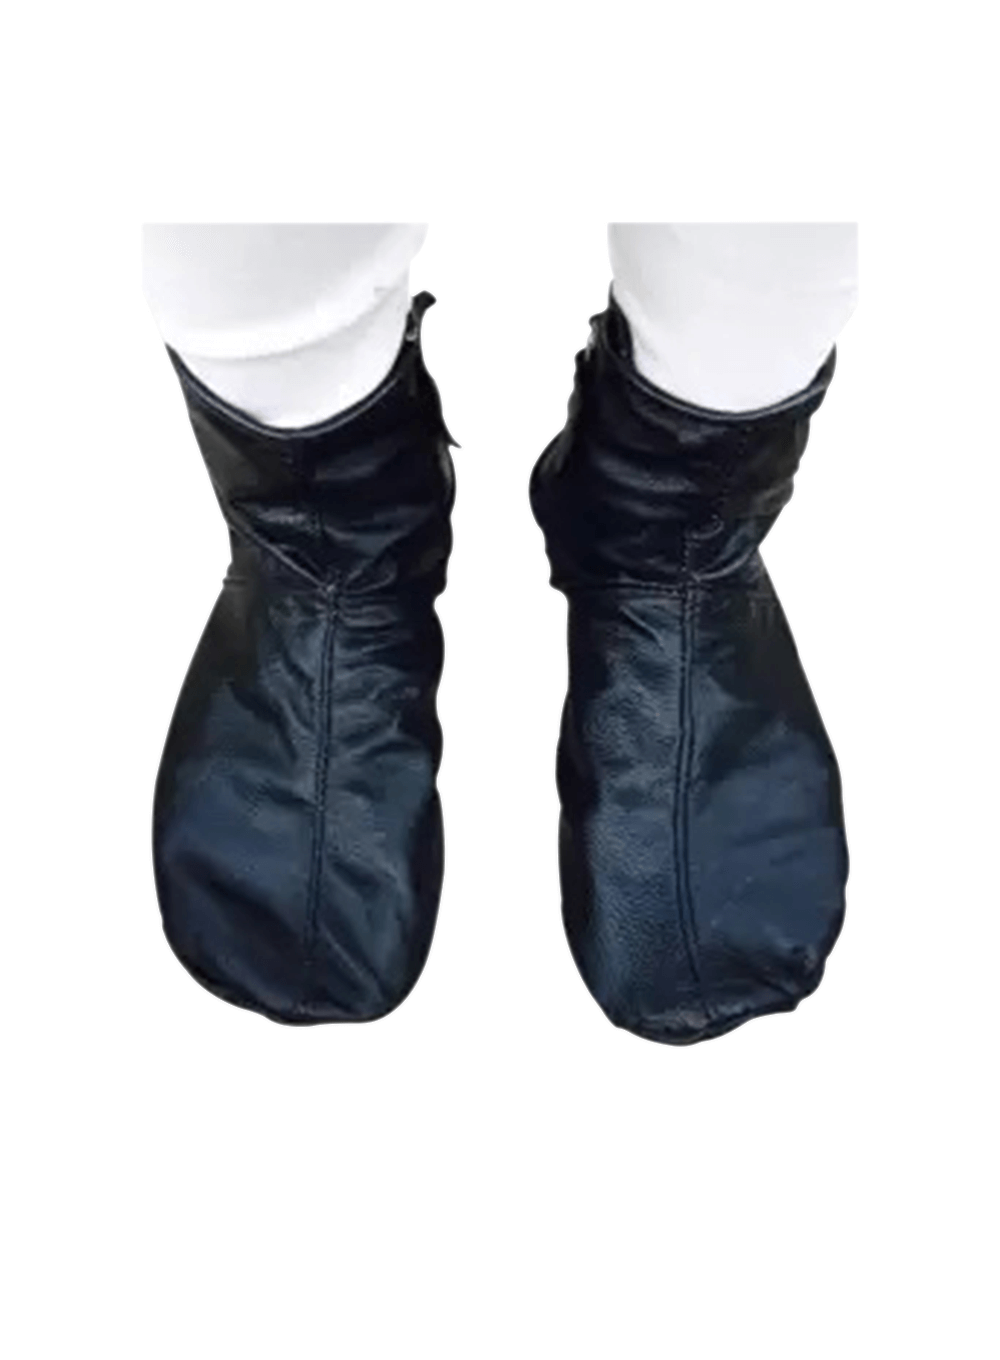 Mozay `B` Quality - 100% Genuine Leather Socks Warm Fabric inside for Cold Weather - Black - Unisex - Hajj & Umrah/